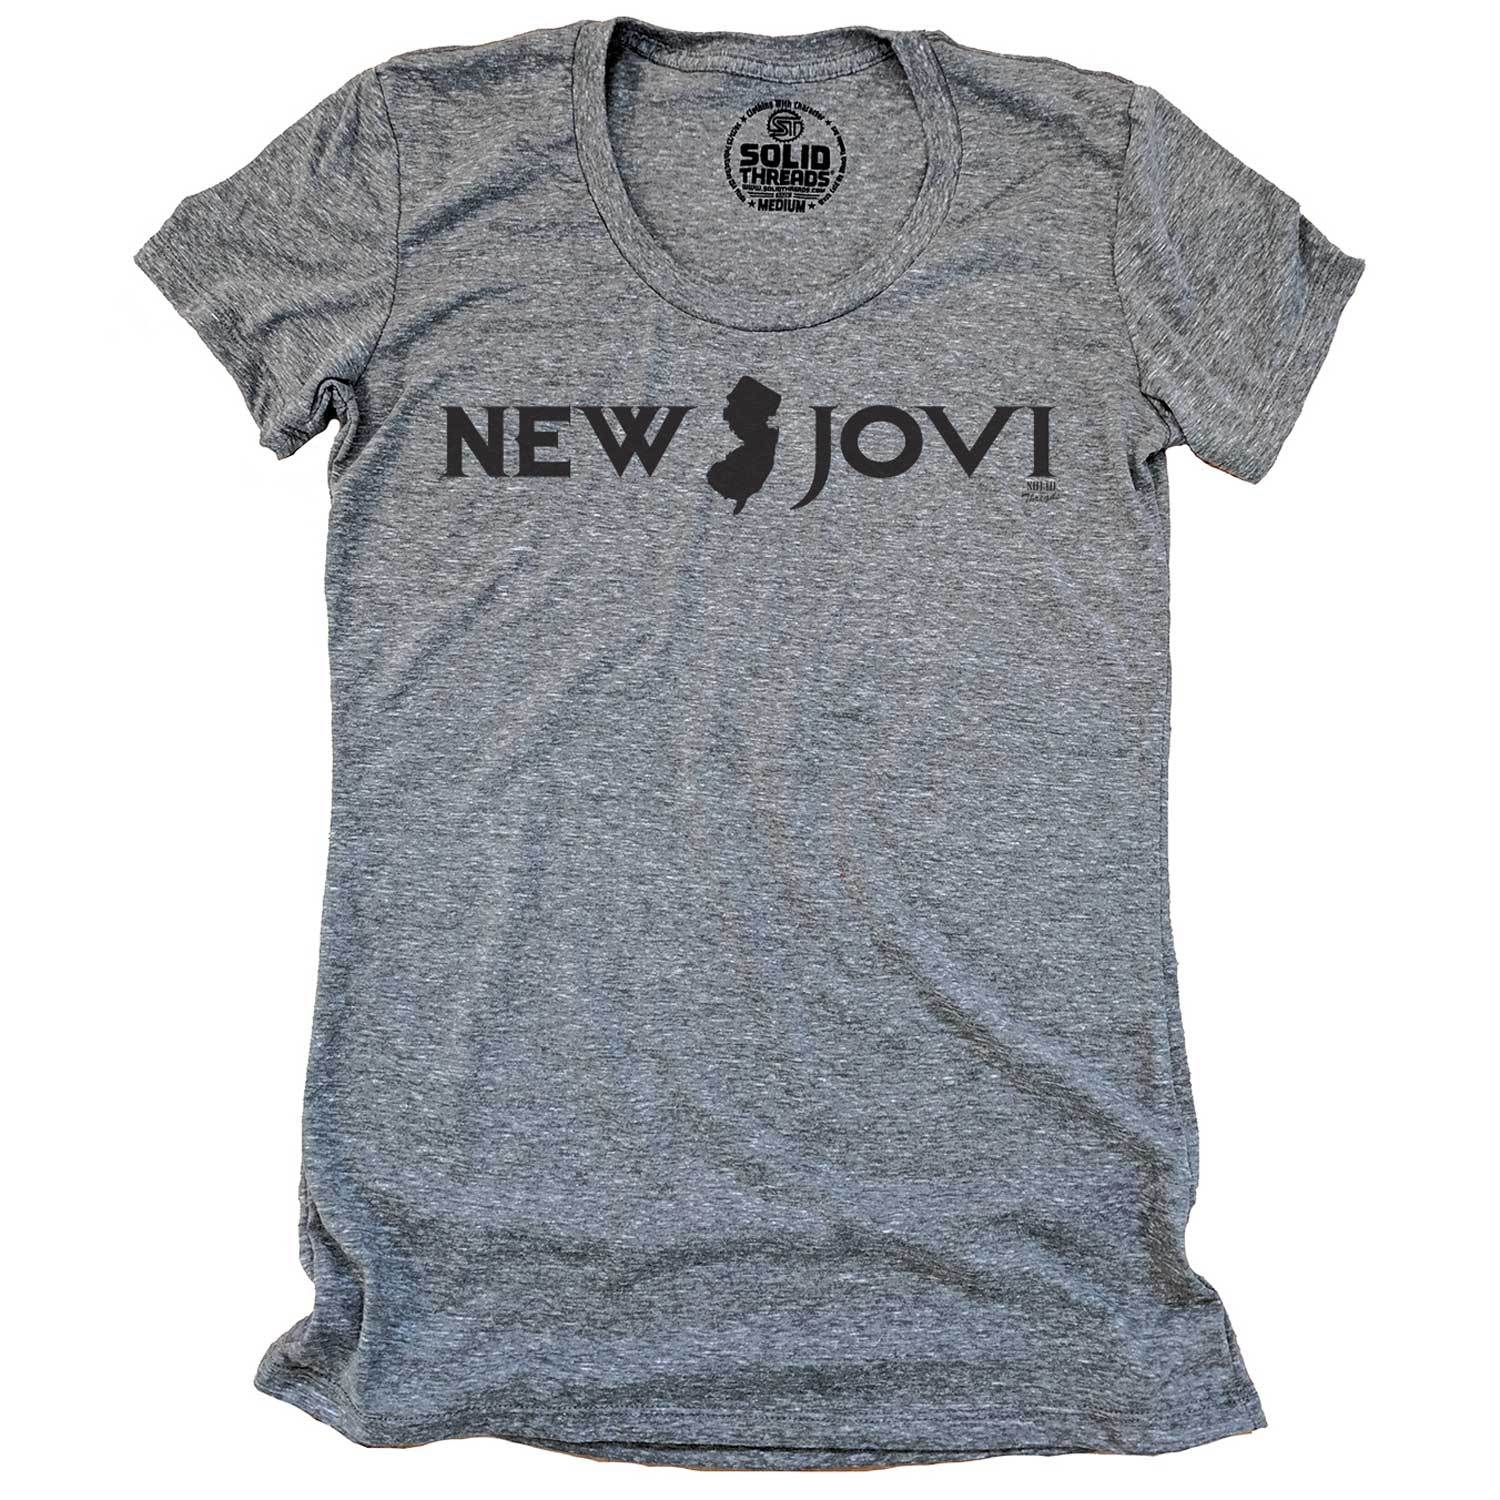 Women's New Jovi Vintage Inspired Scoopneck tee-shirt with funny, Bon Jovi graphic | Solid Threads